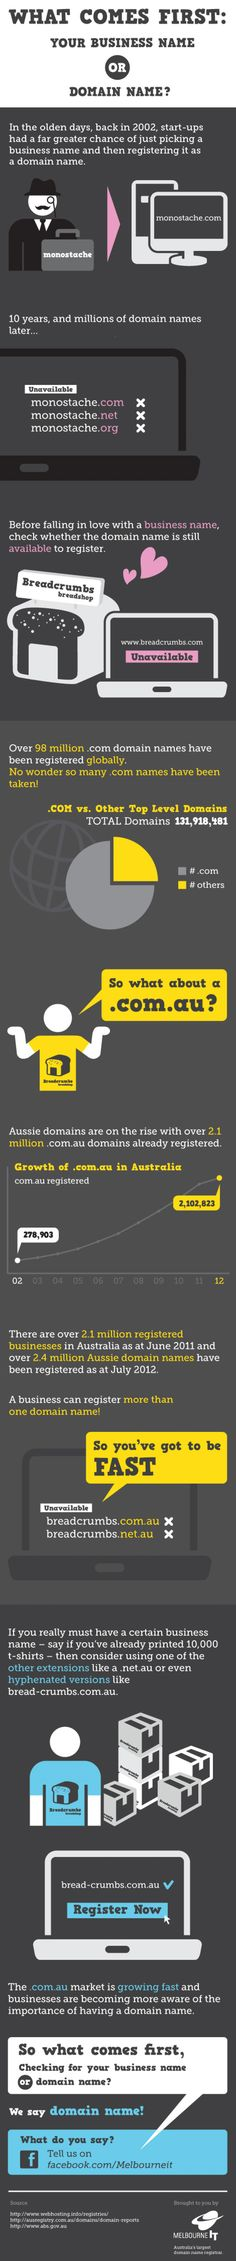 What comes first: Your business name or domain name? | MelbourneIT